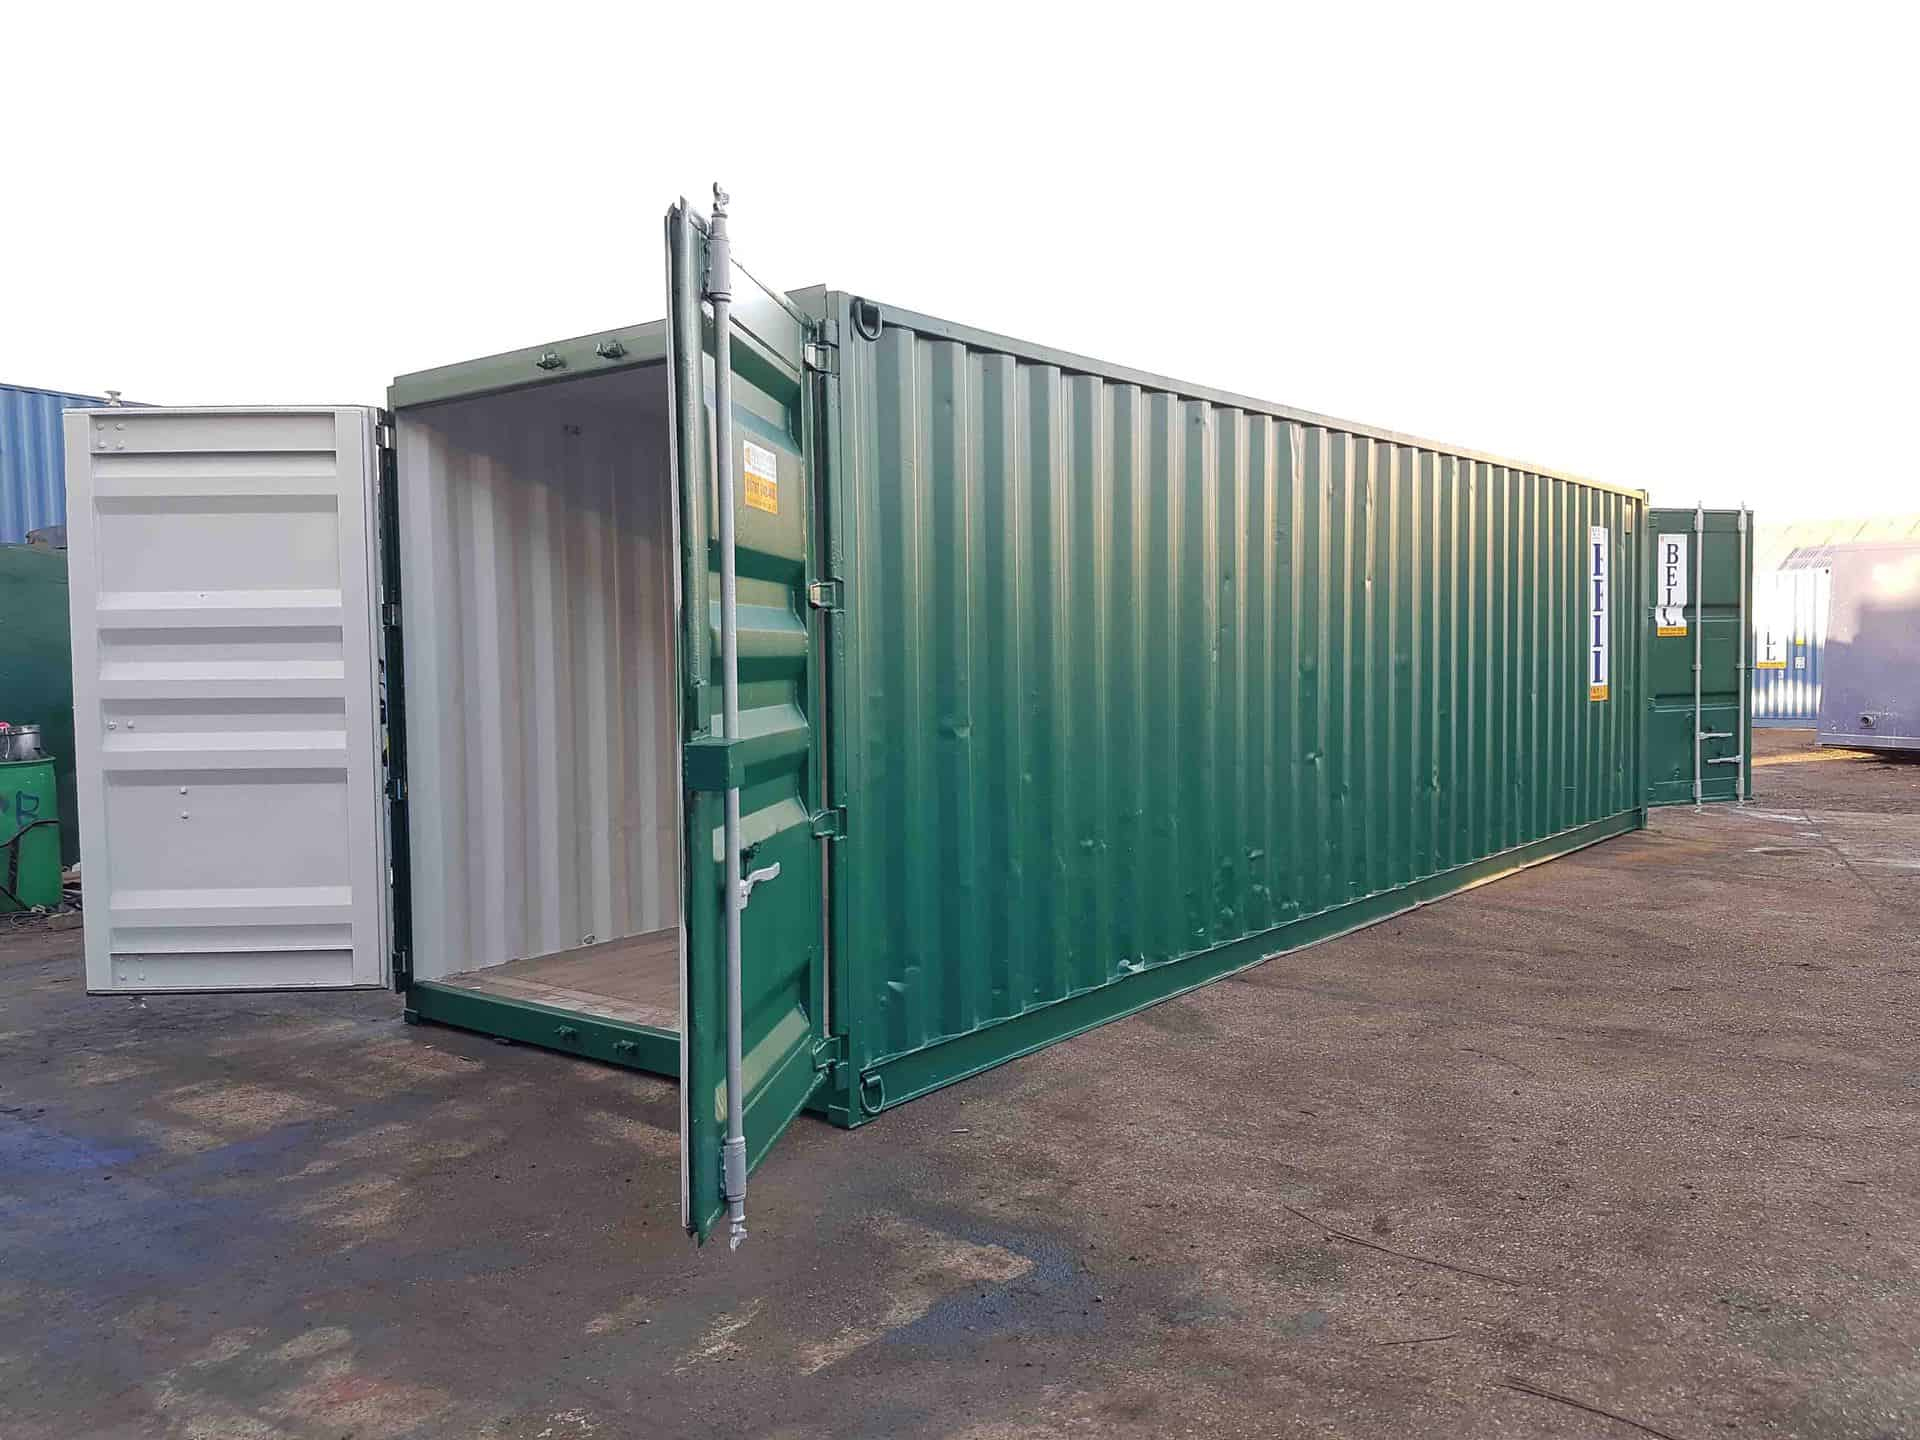 30 x 8 tunnel container ext side profile